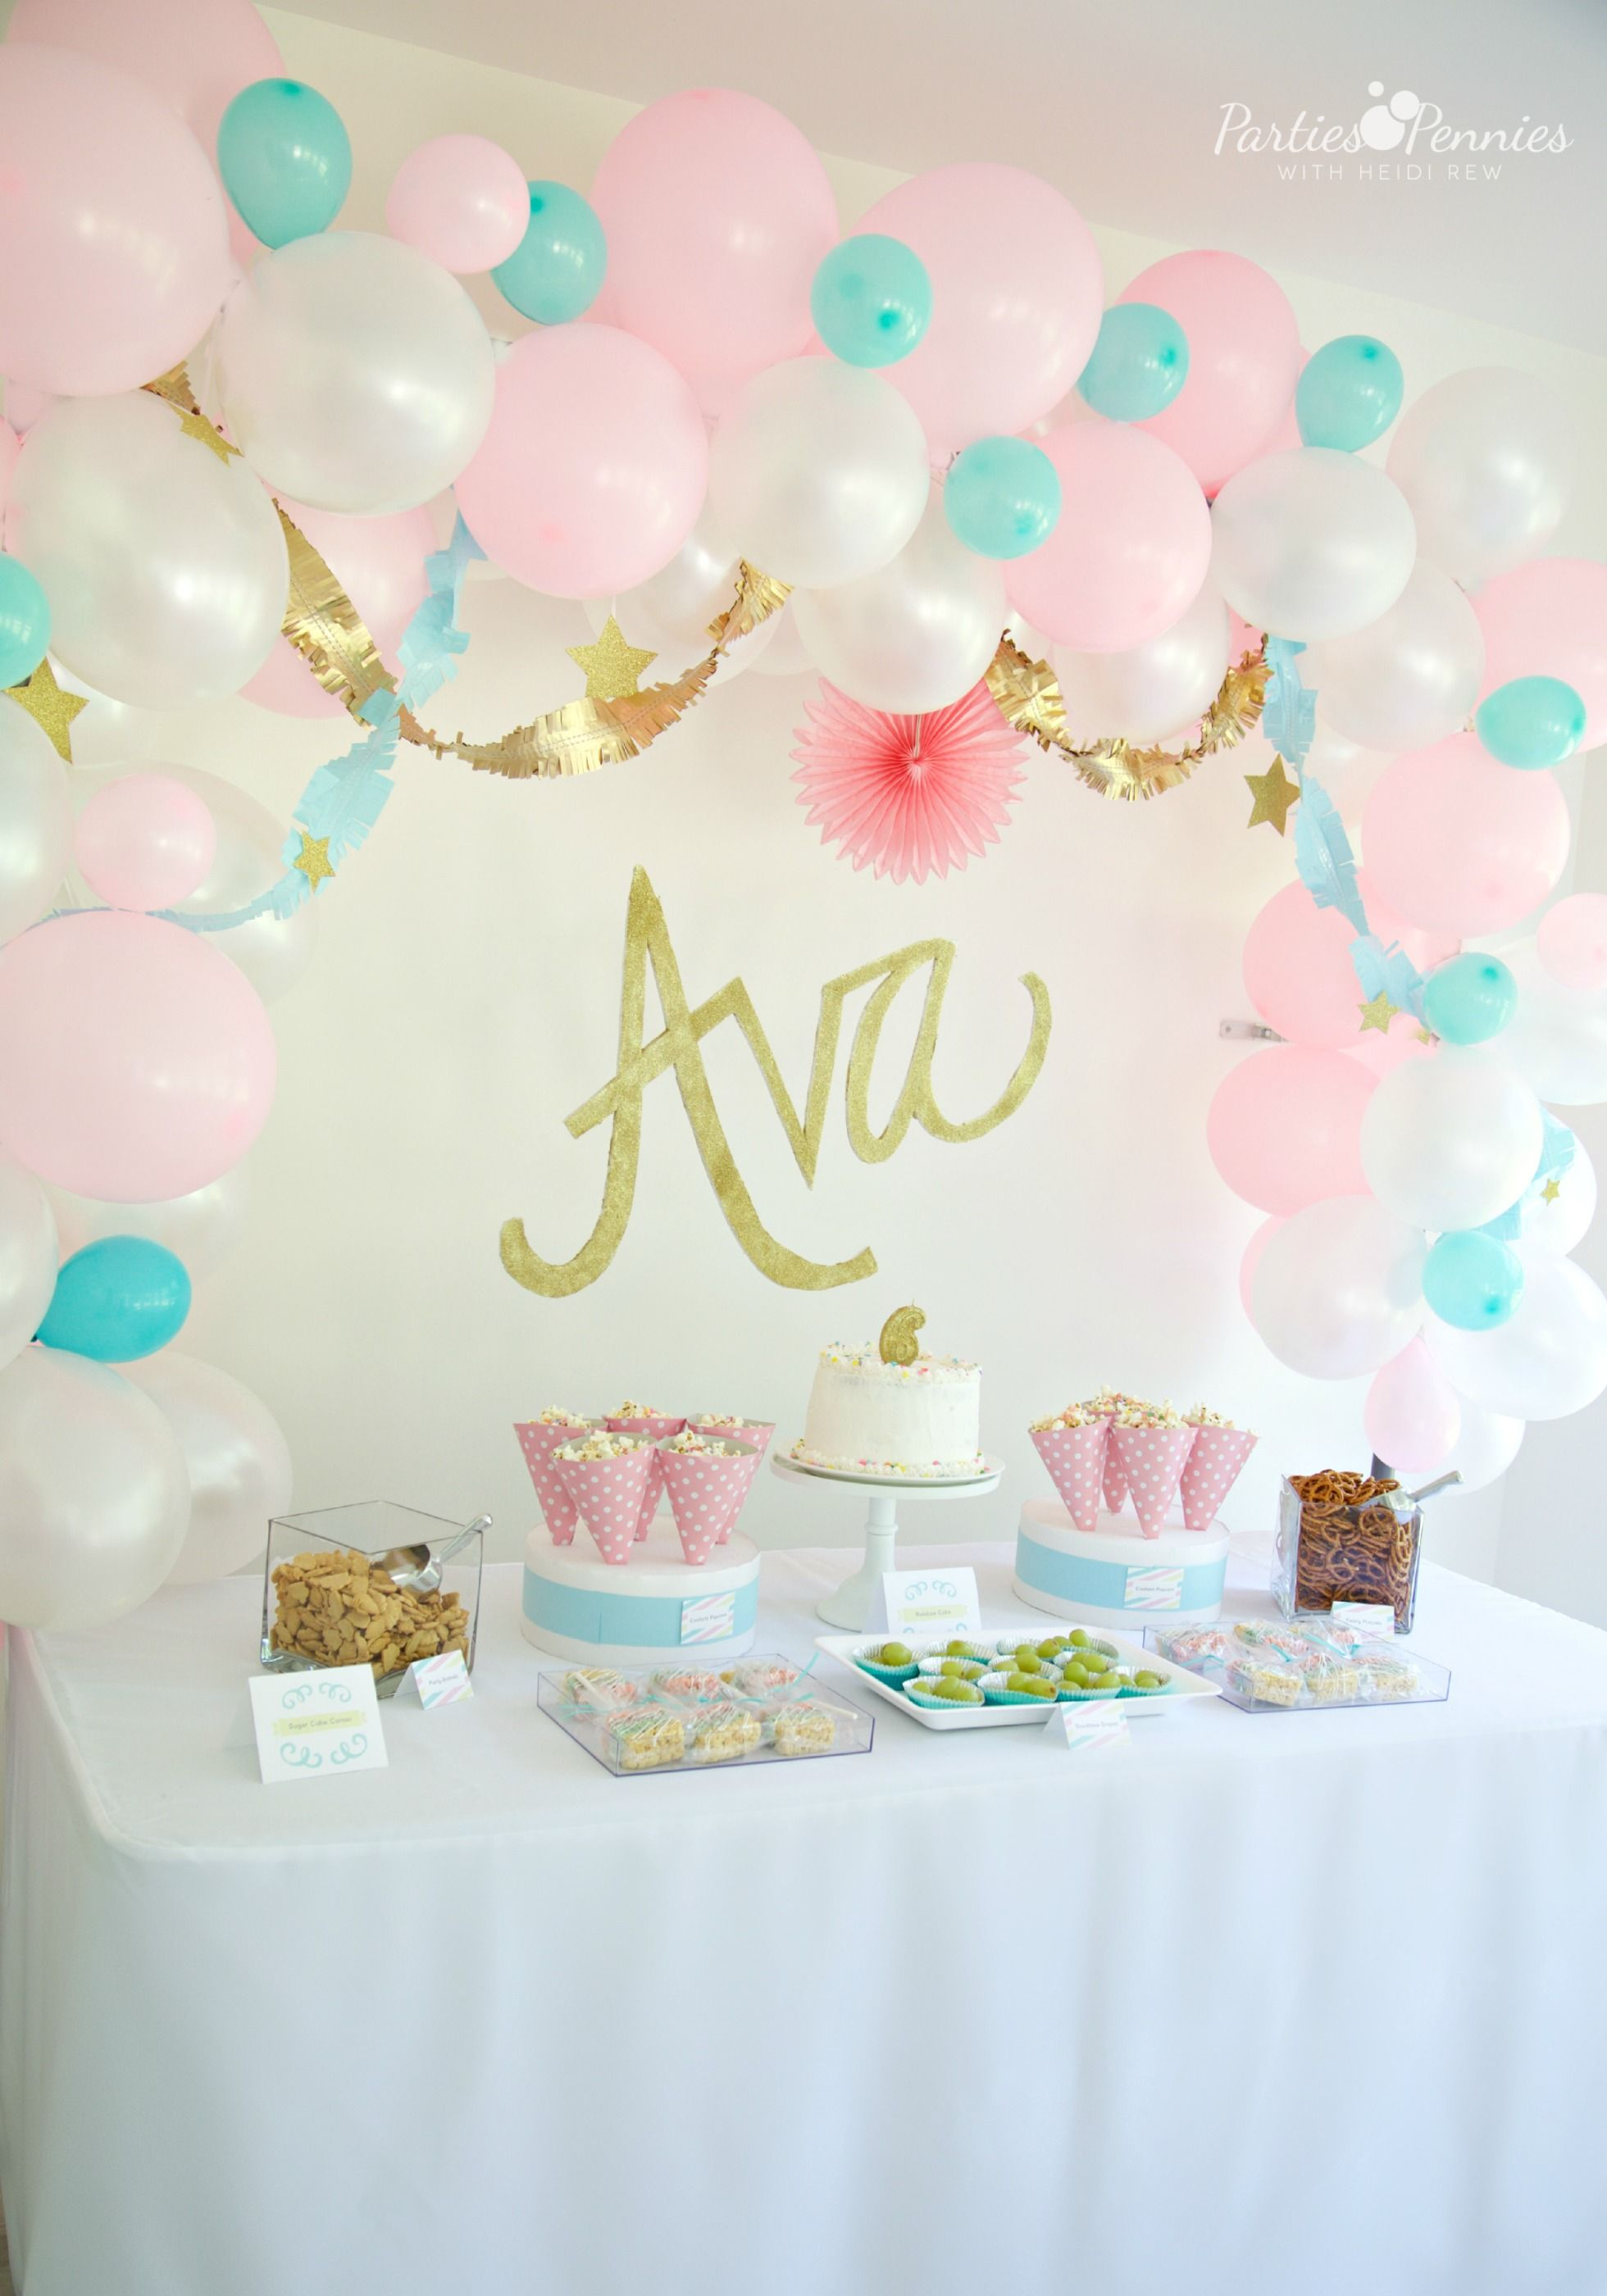 Home | Pinterest | Birthdays, Unicorn party and Birthday party ideas